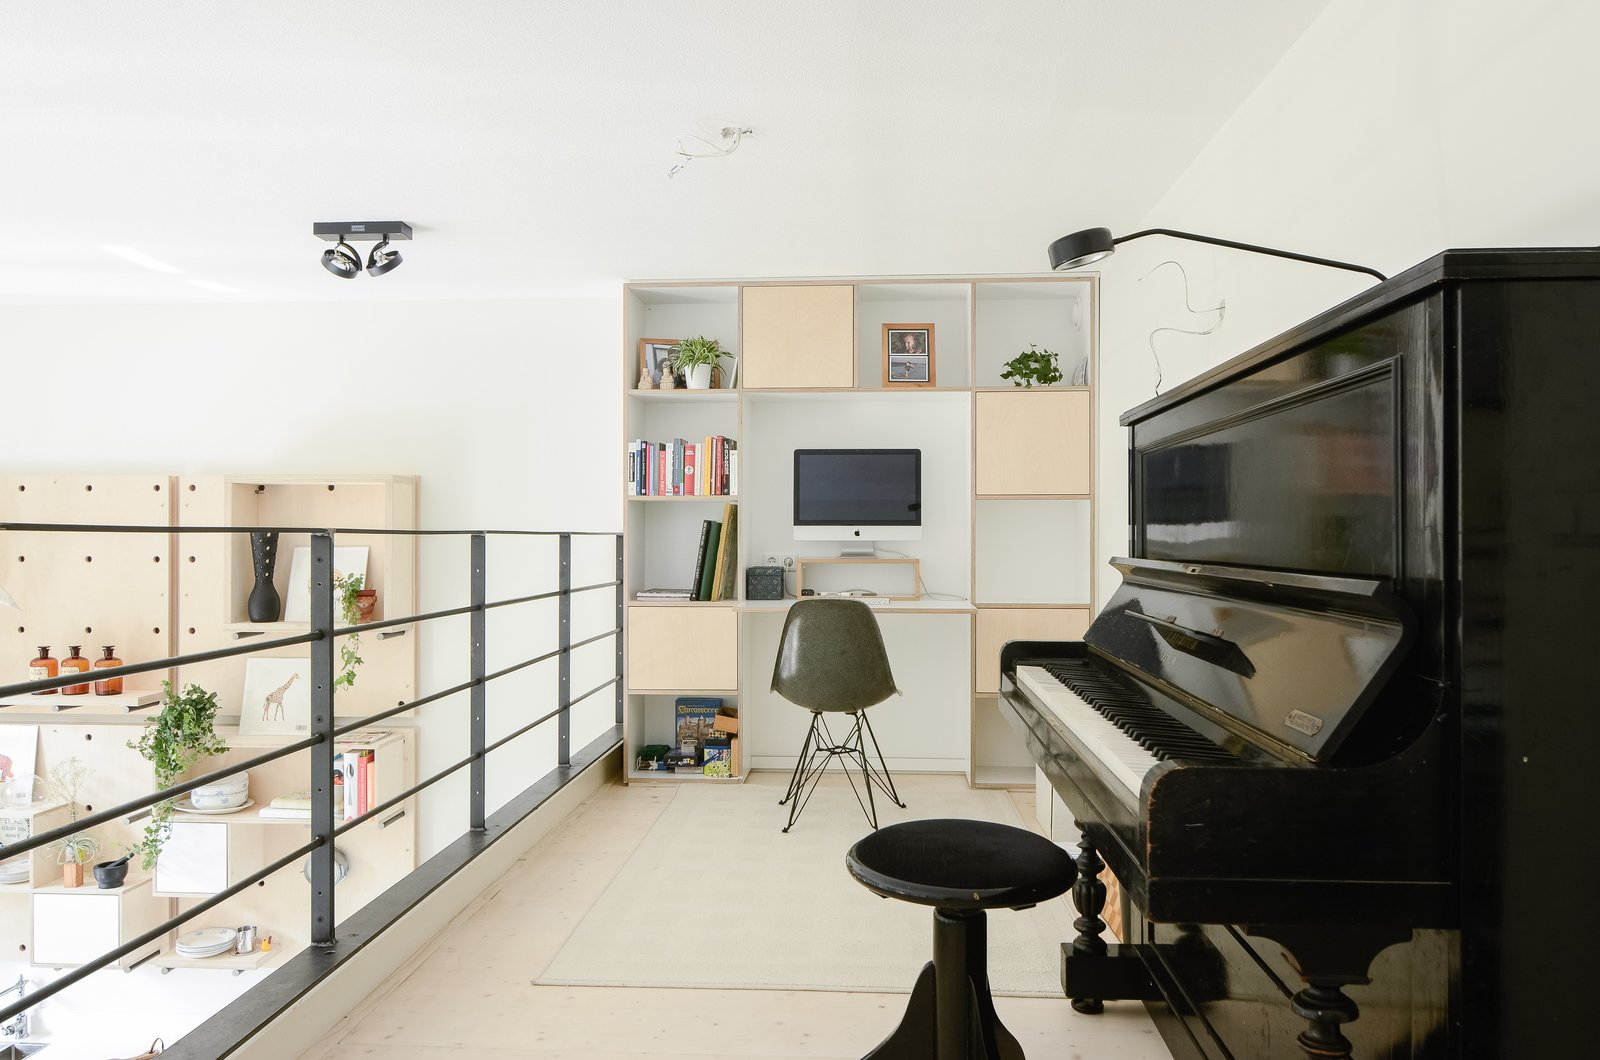 The loft addition afforded space for a home office and music area. The family chose to forego a dedicated office upstairs, instead prioritizing private bedrooms for each of the children. Shelving and a built-in desk anchor the loft's far wall.  Office from The Schoolhouse